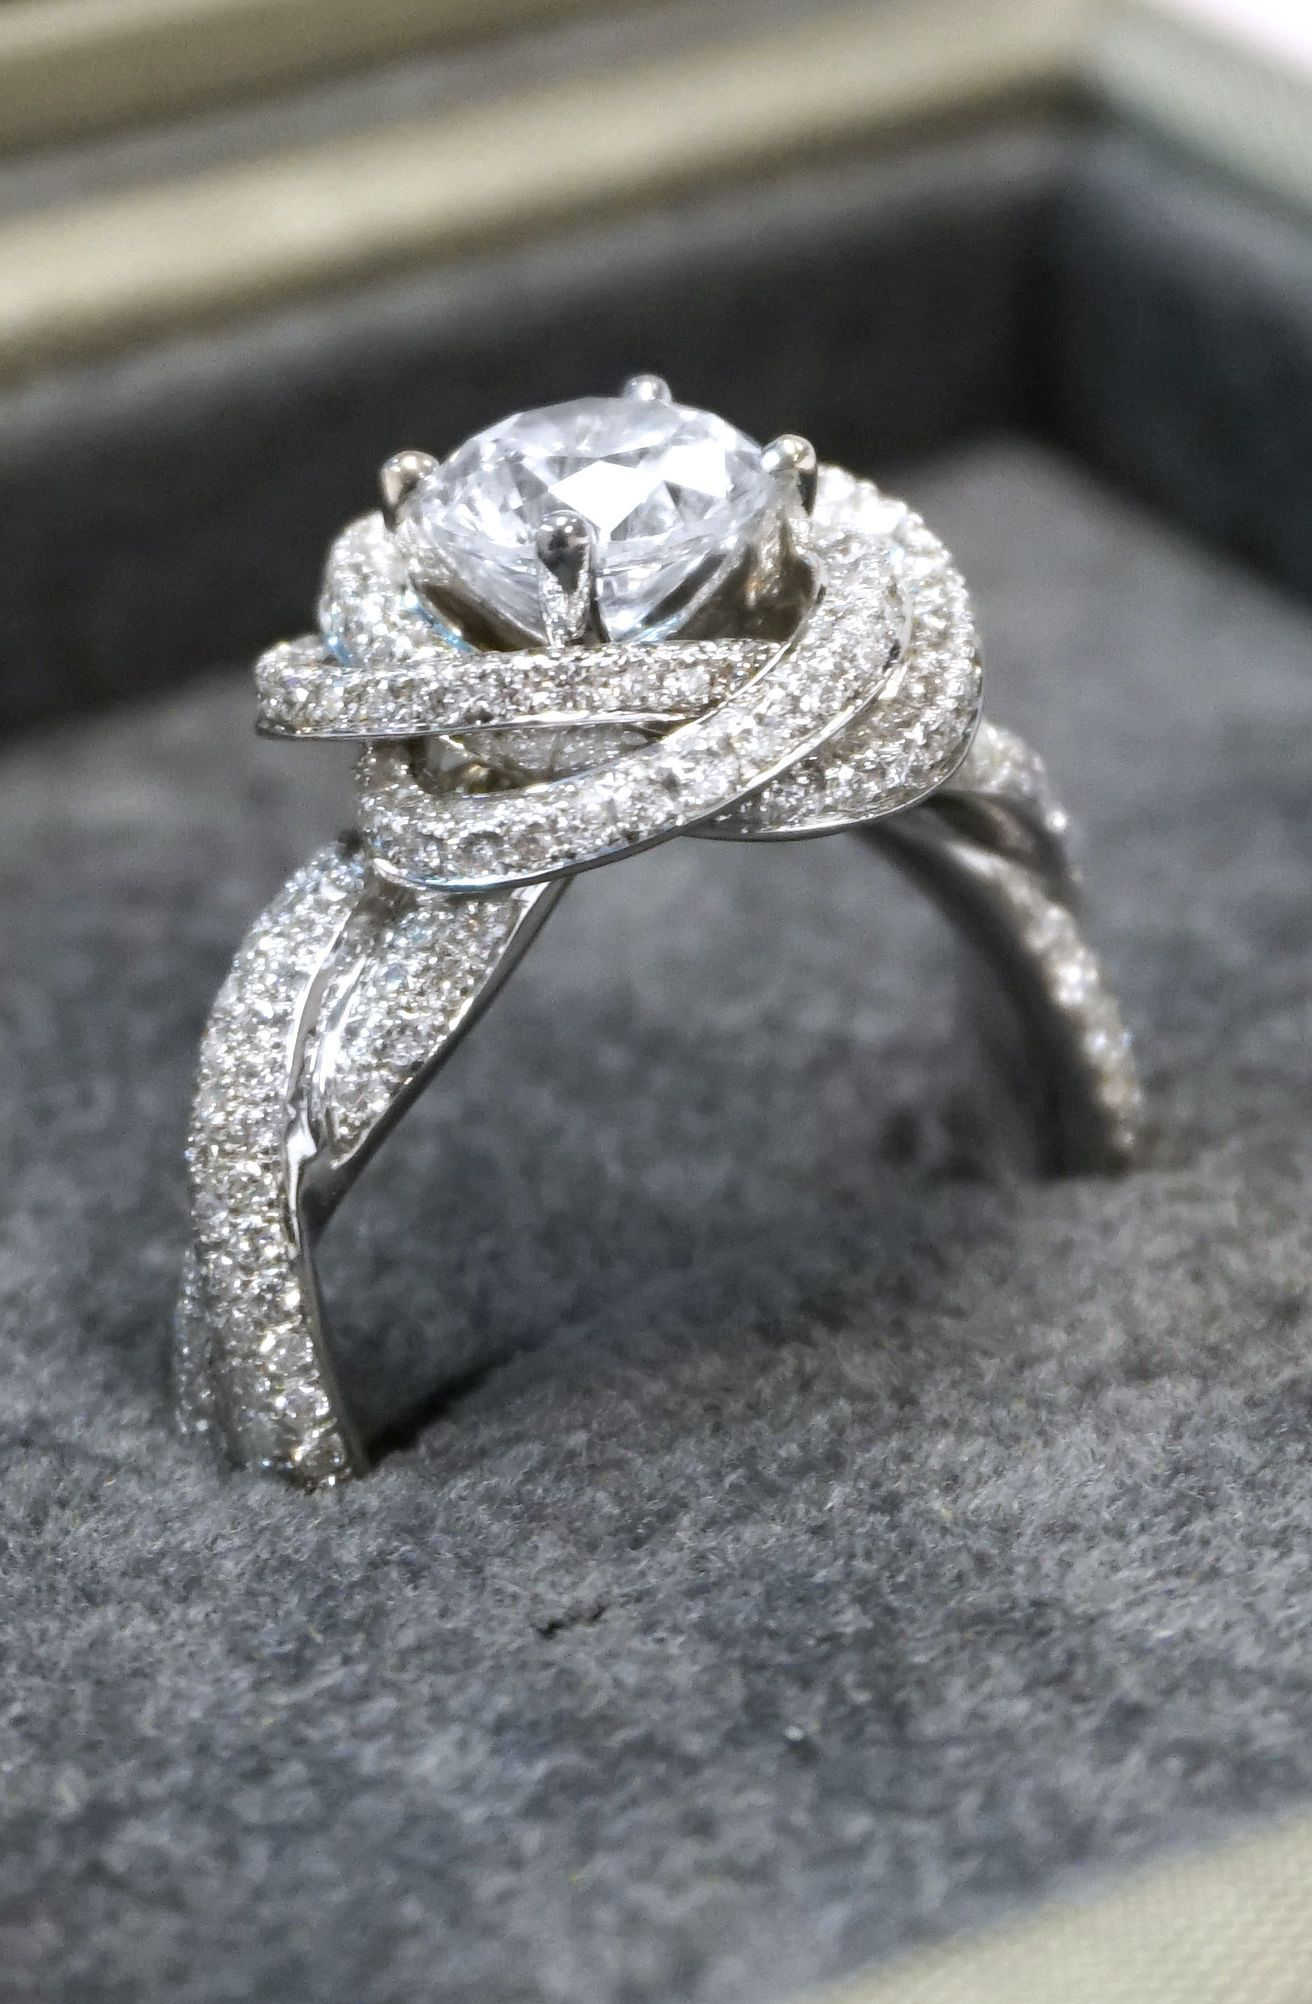 jewelry rings pav online knot wedding glamorous seattle joseph design bellevue engagement pin own edgeless ring and modern your